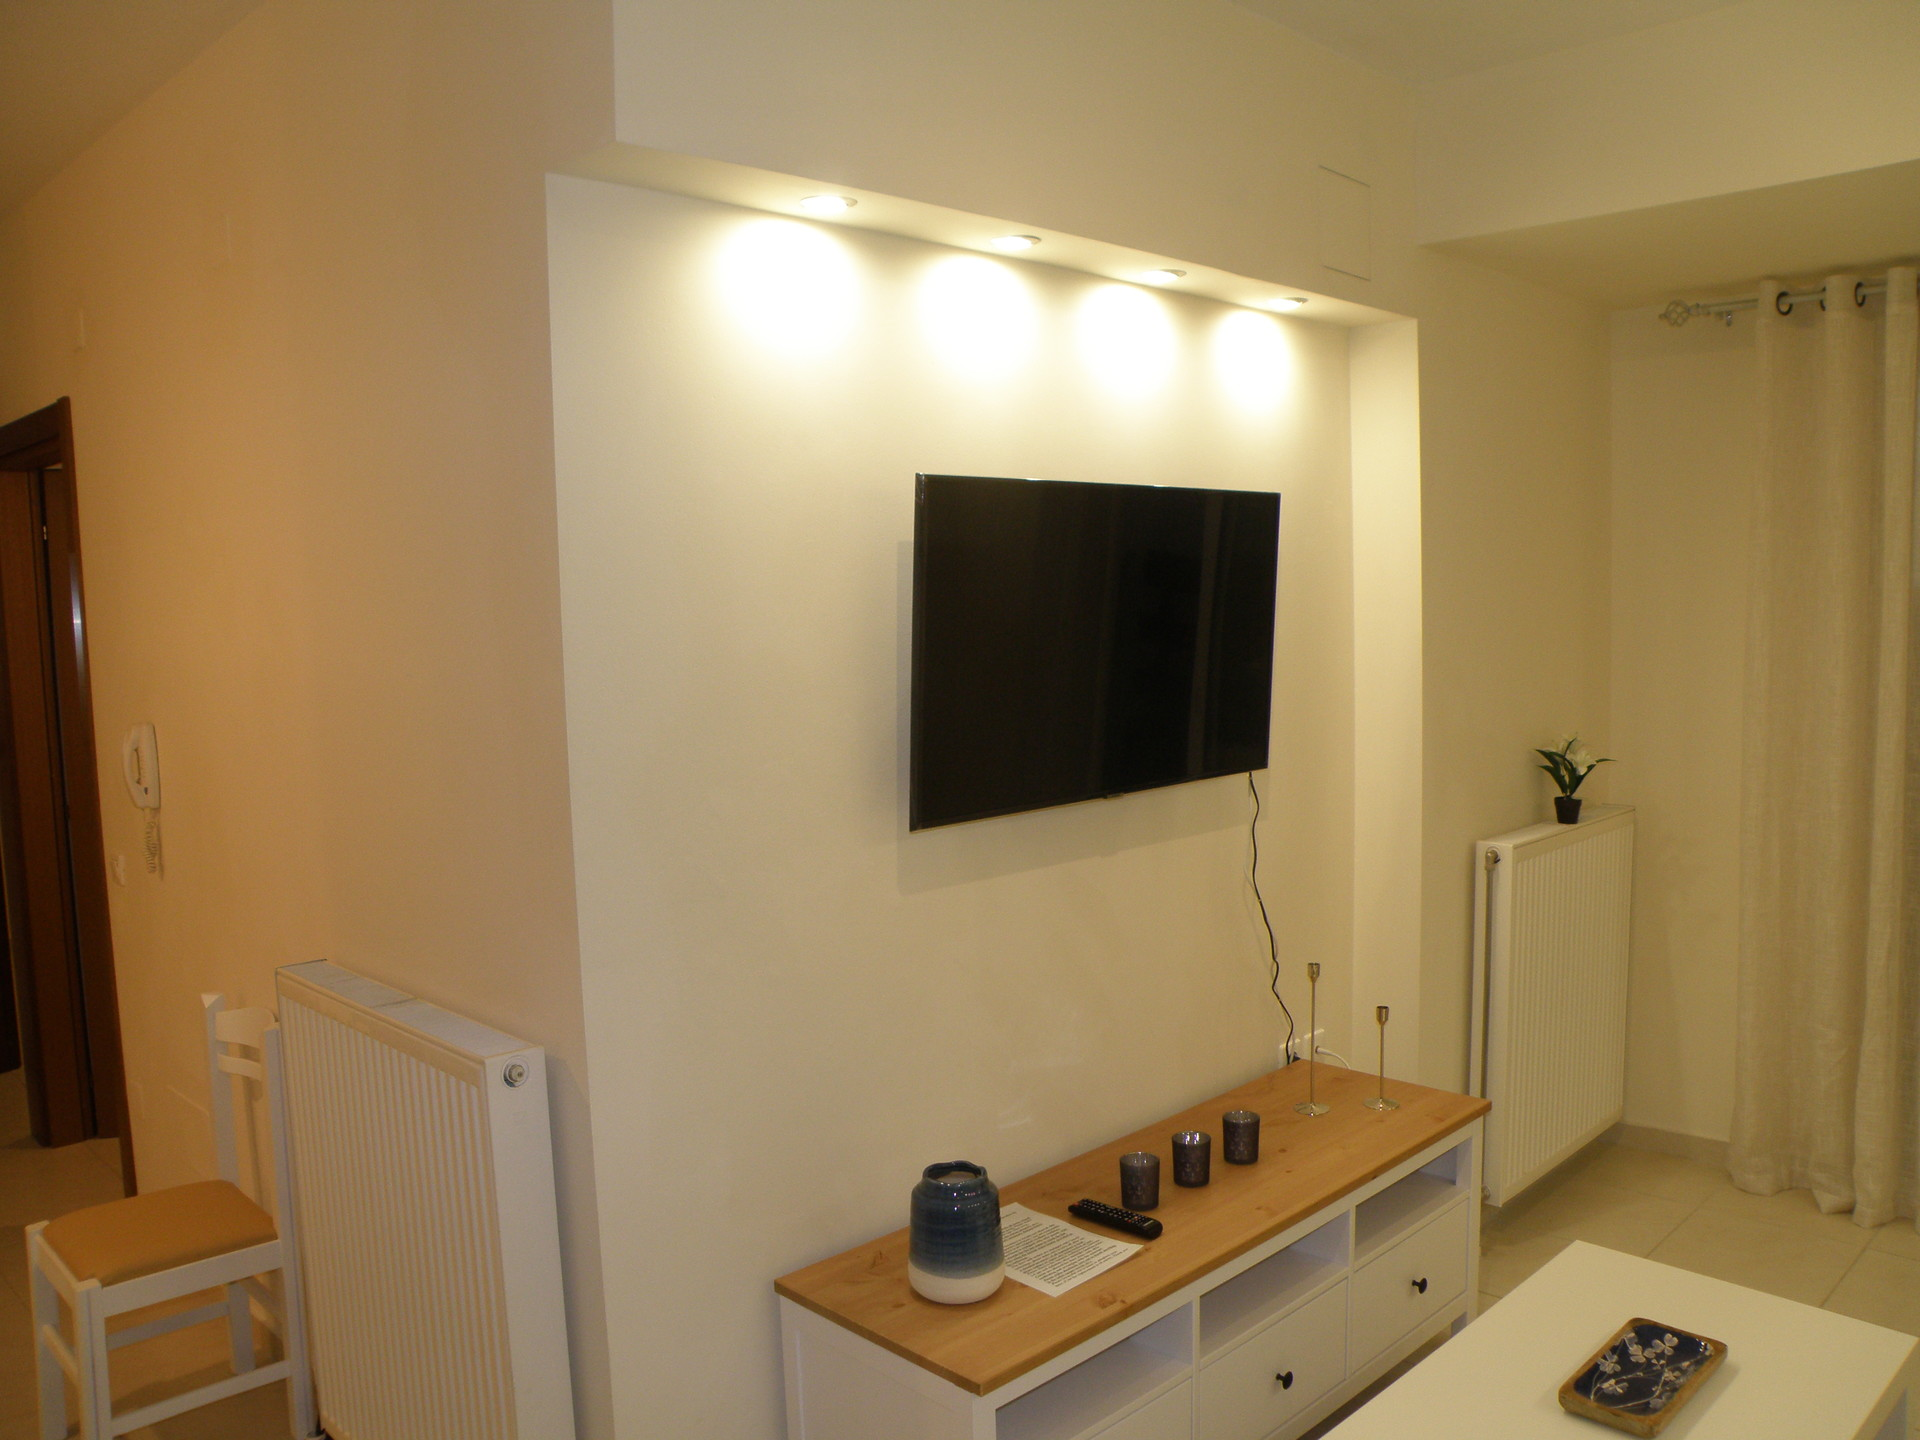 Ideally Situated 2 Bedroom Comfort Flat In The Center Flat Rent Irakleion